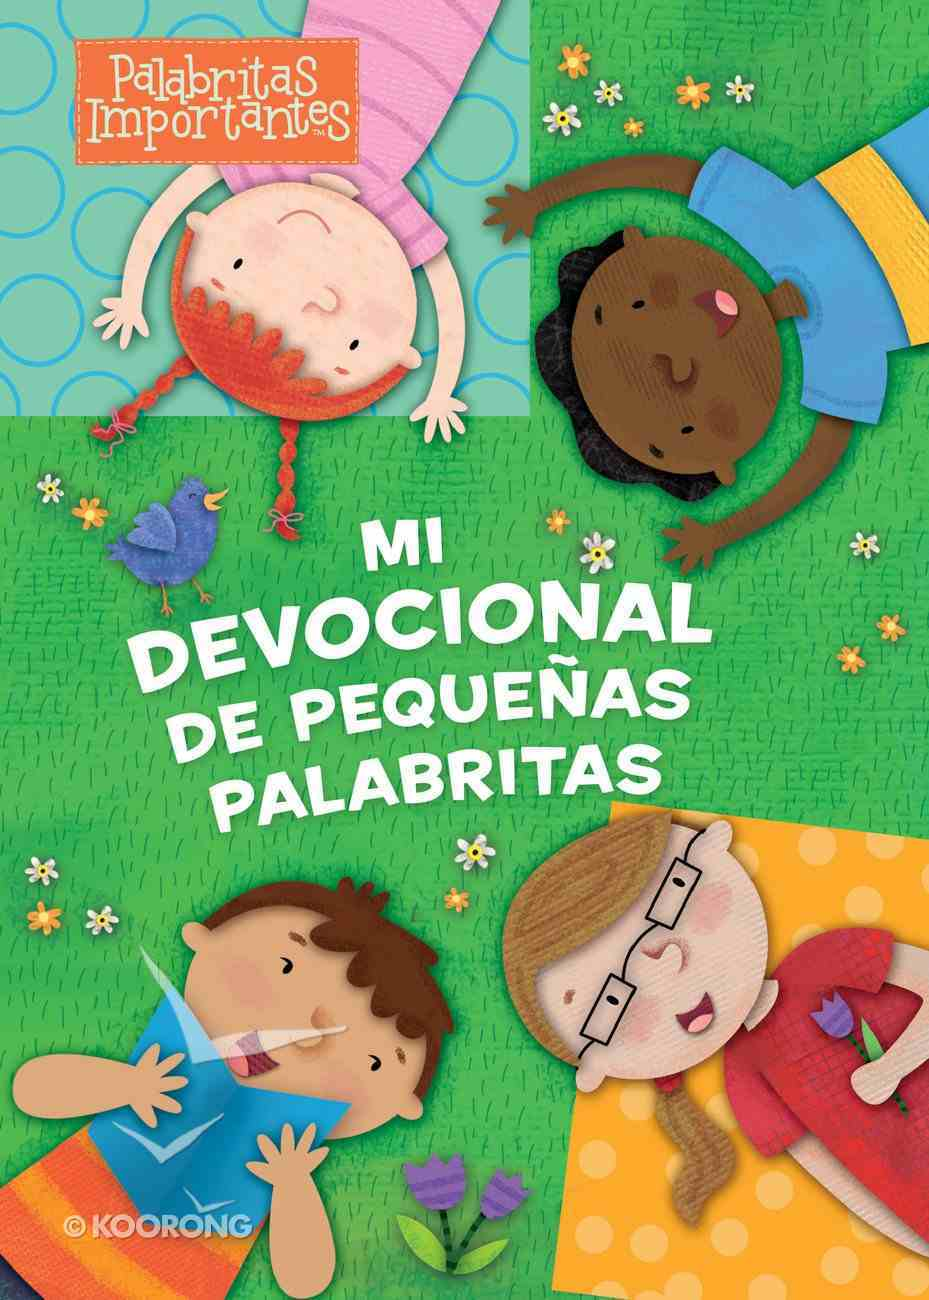 Mi Devocional De Pequenitas Palabritas (My Little Words Devotional) Board Book